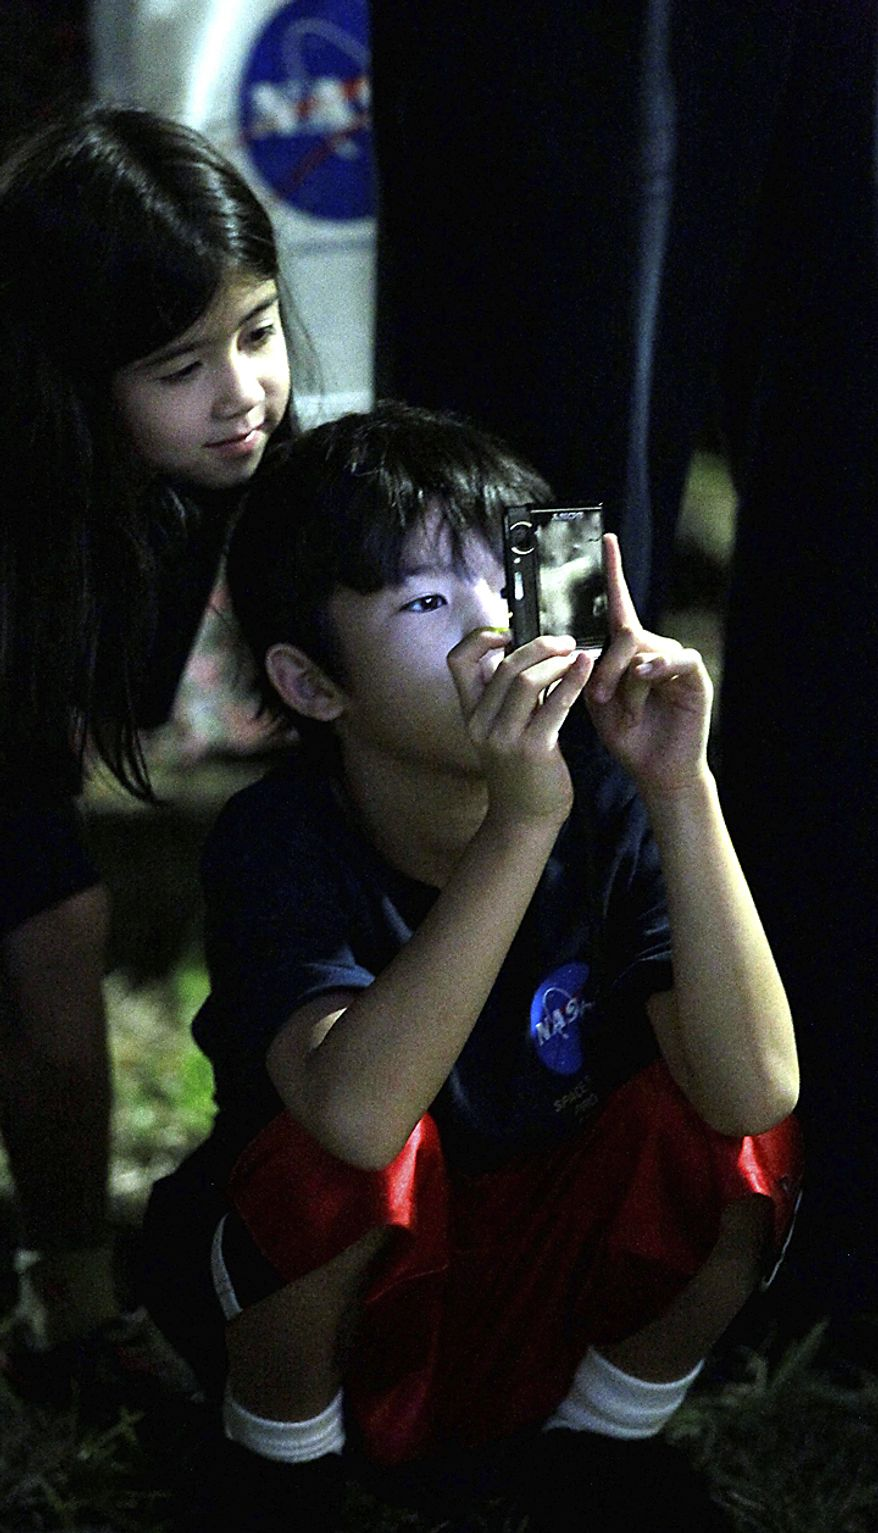 Kenny Fisher (right) takes a photograph as his sister, Ashley (left), looks over his shoulder as they wait at the Johnson Space Center in Houston to watch space shuttle Atlantis land at Kennedy Space Center in Florida on Thursday, July 21, 2011. The landing of the spacecraft brings the shuttle program to an end. (AP Photo/David J. Phillip)